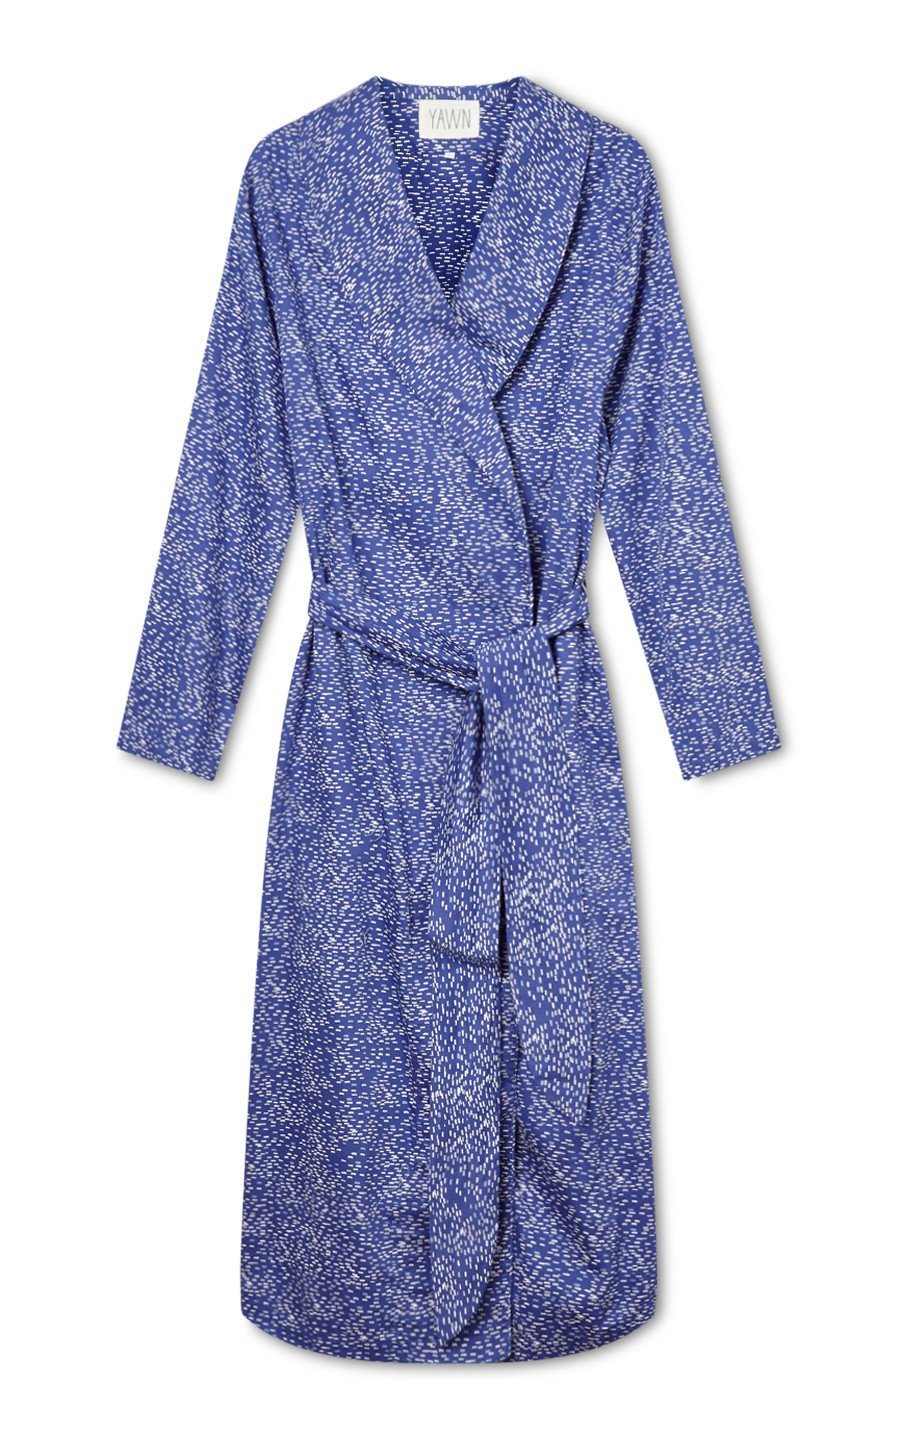 Calm Waters Dressing Gown Sale Yawn